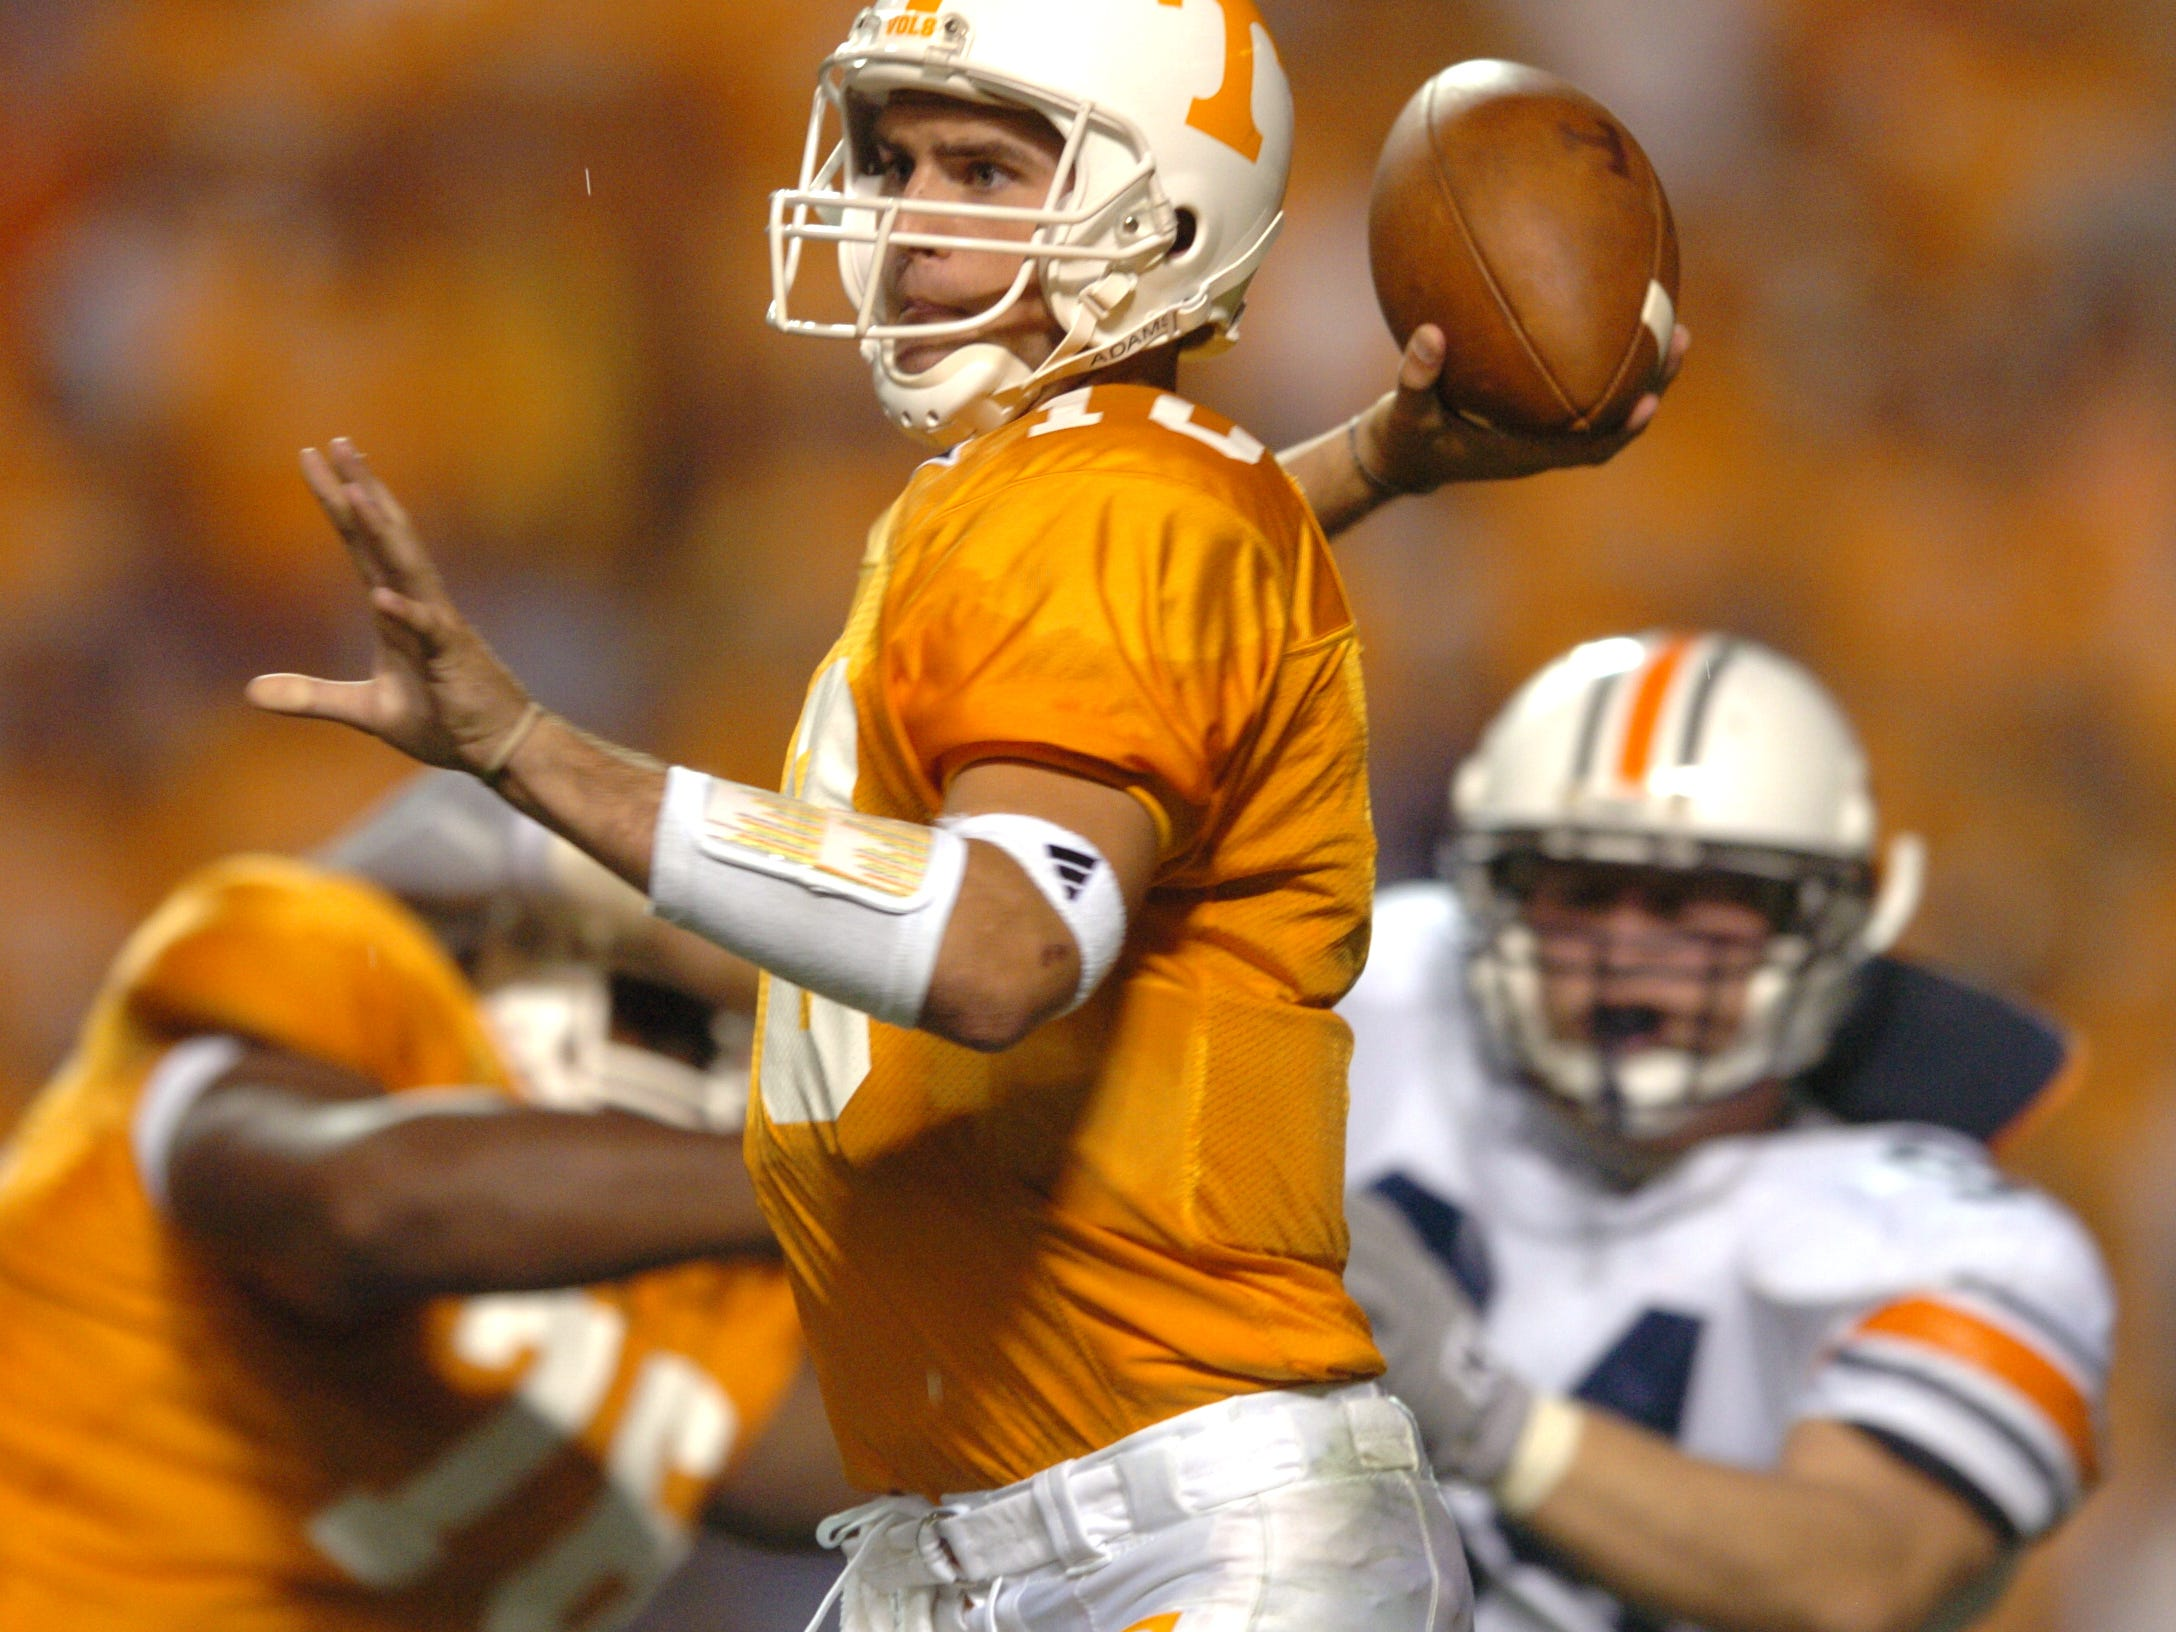 UT quarterback Erik Ainge looks for a receiver while playing against Auburn in 2004